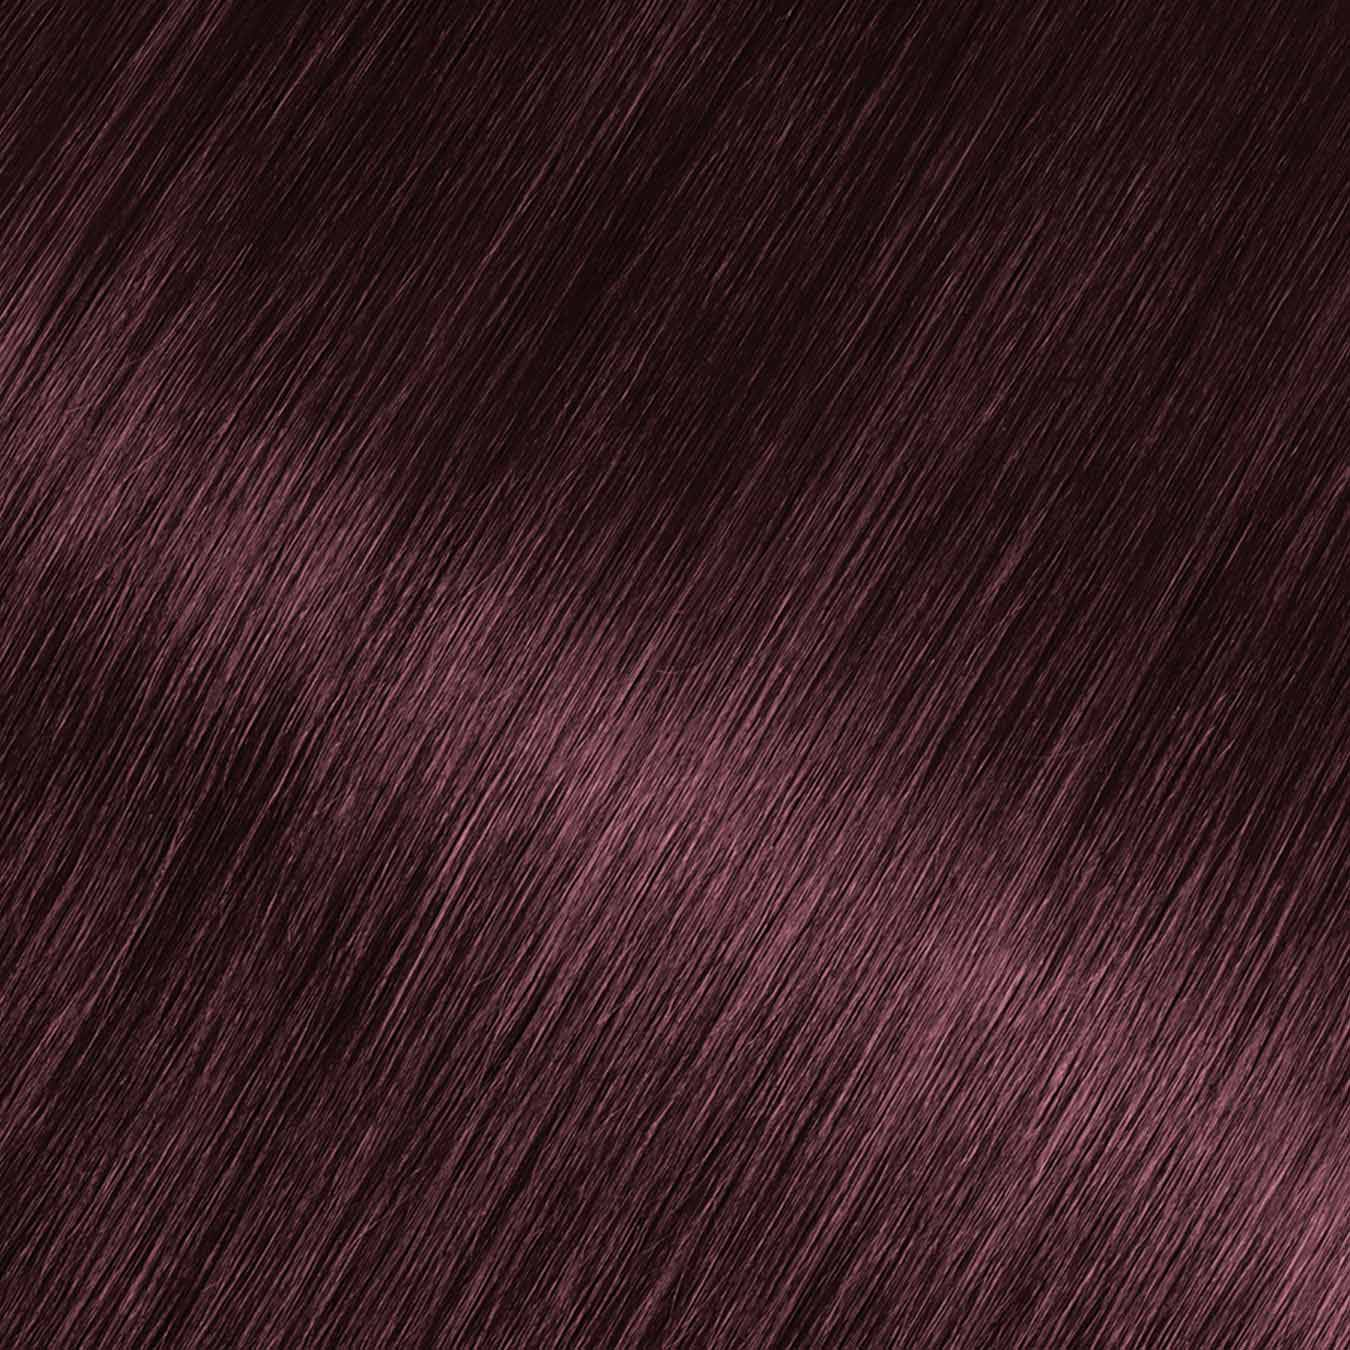 Hair Swatch of Olia Bold 5.12 - Medium Royal Amethyst.